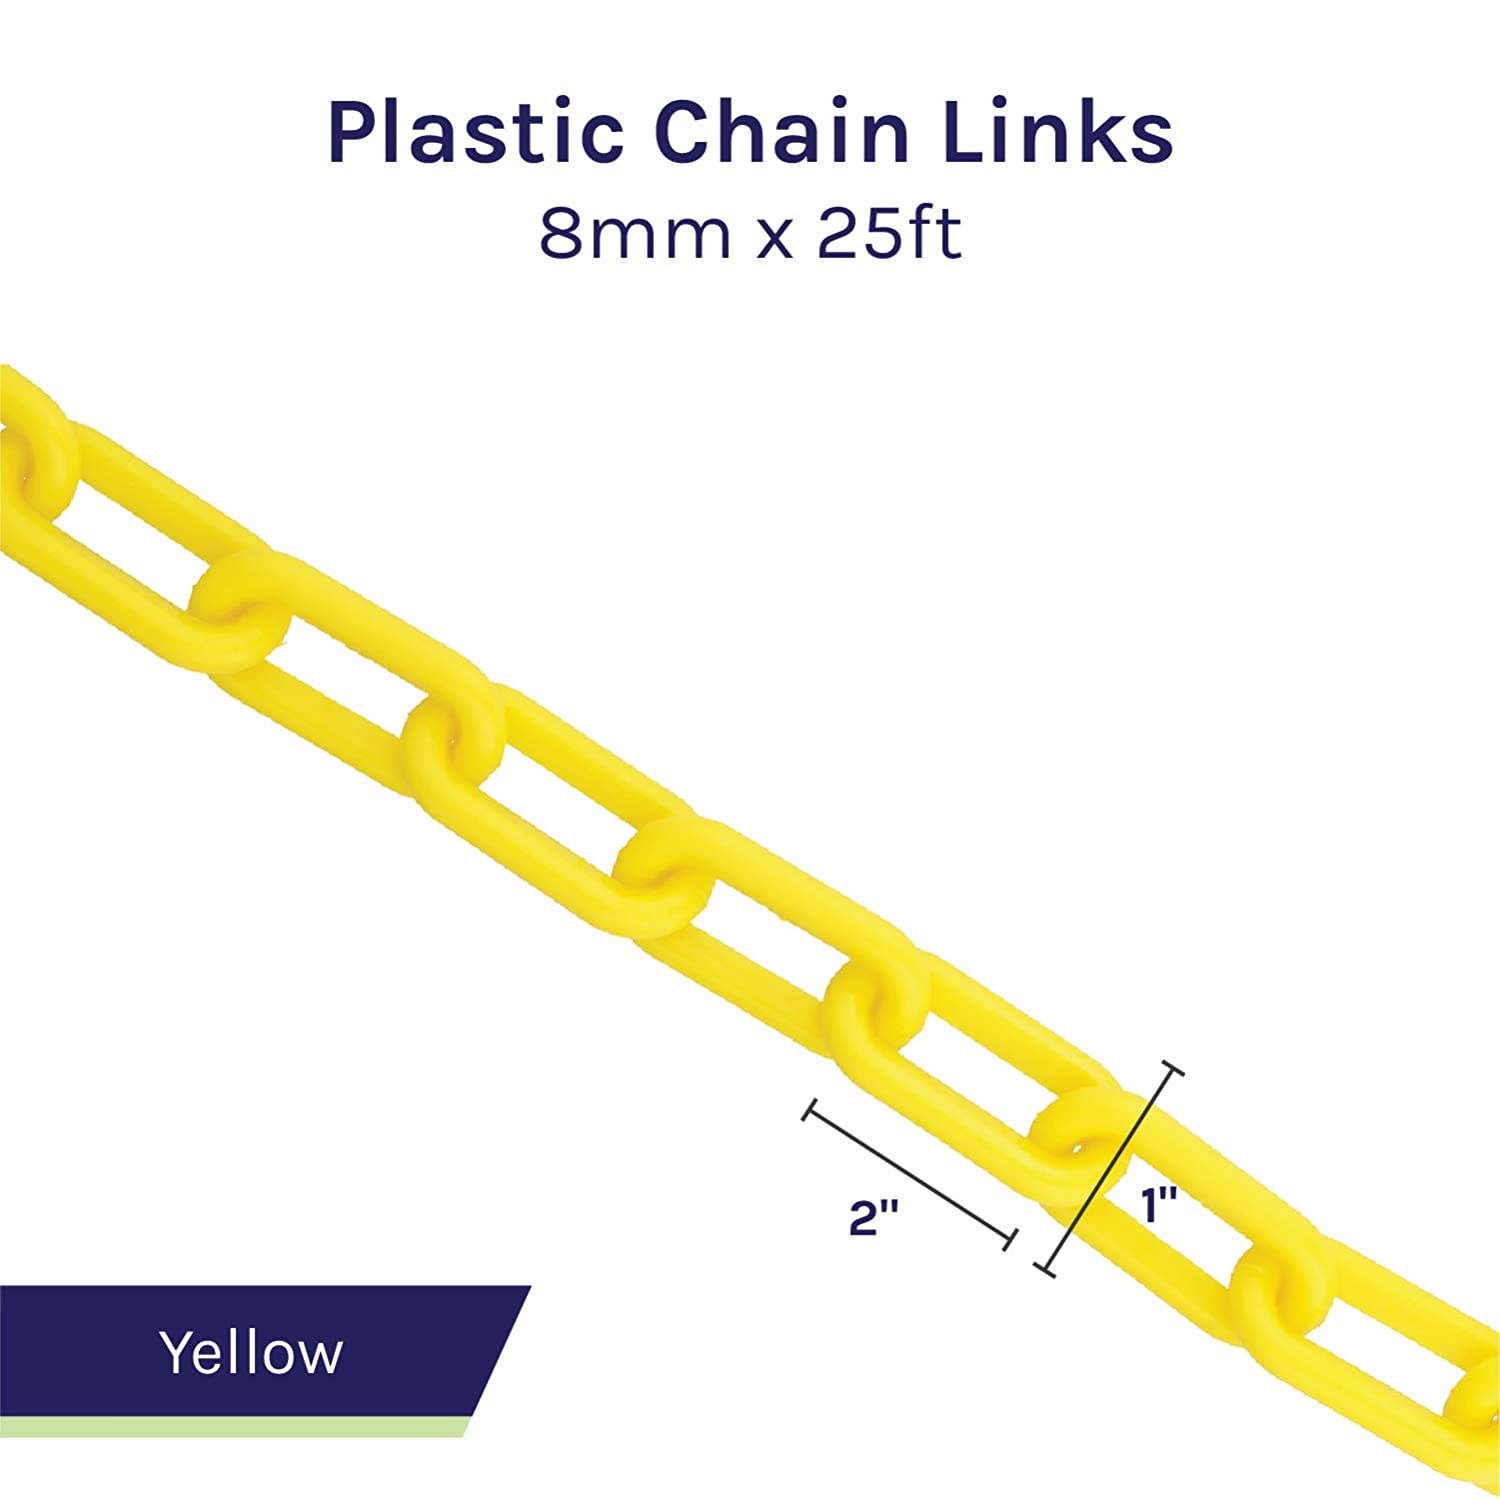 Halloween Chains BIS Plastic Chain Links in White White Chain for Crowd Control Prop Chains 2in x 125ft